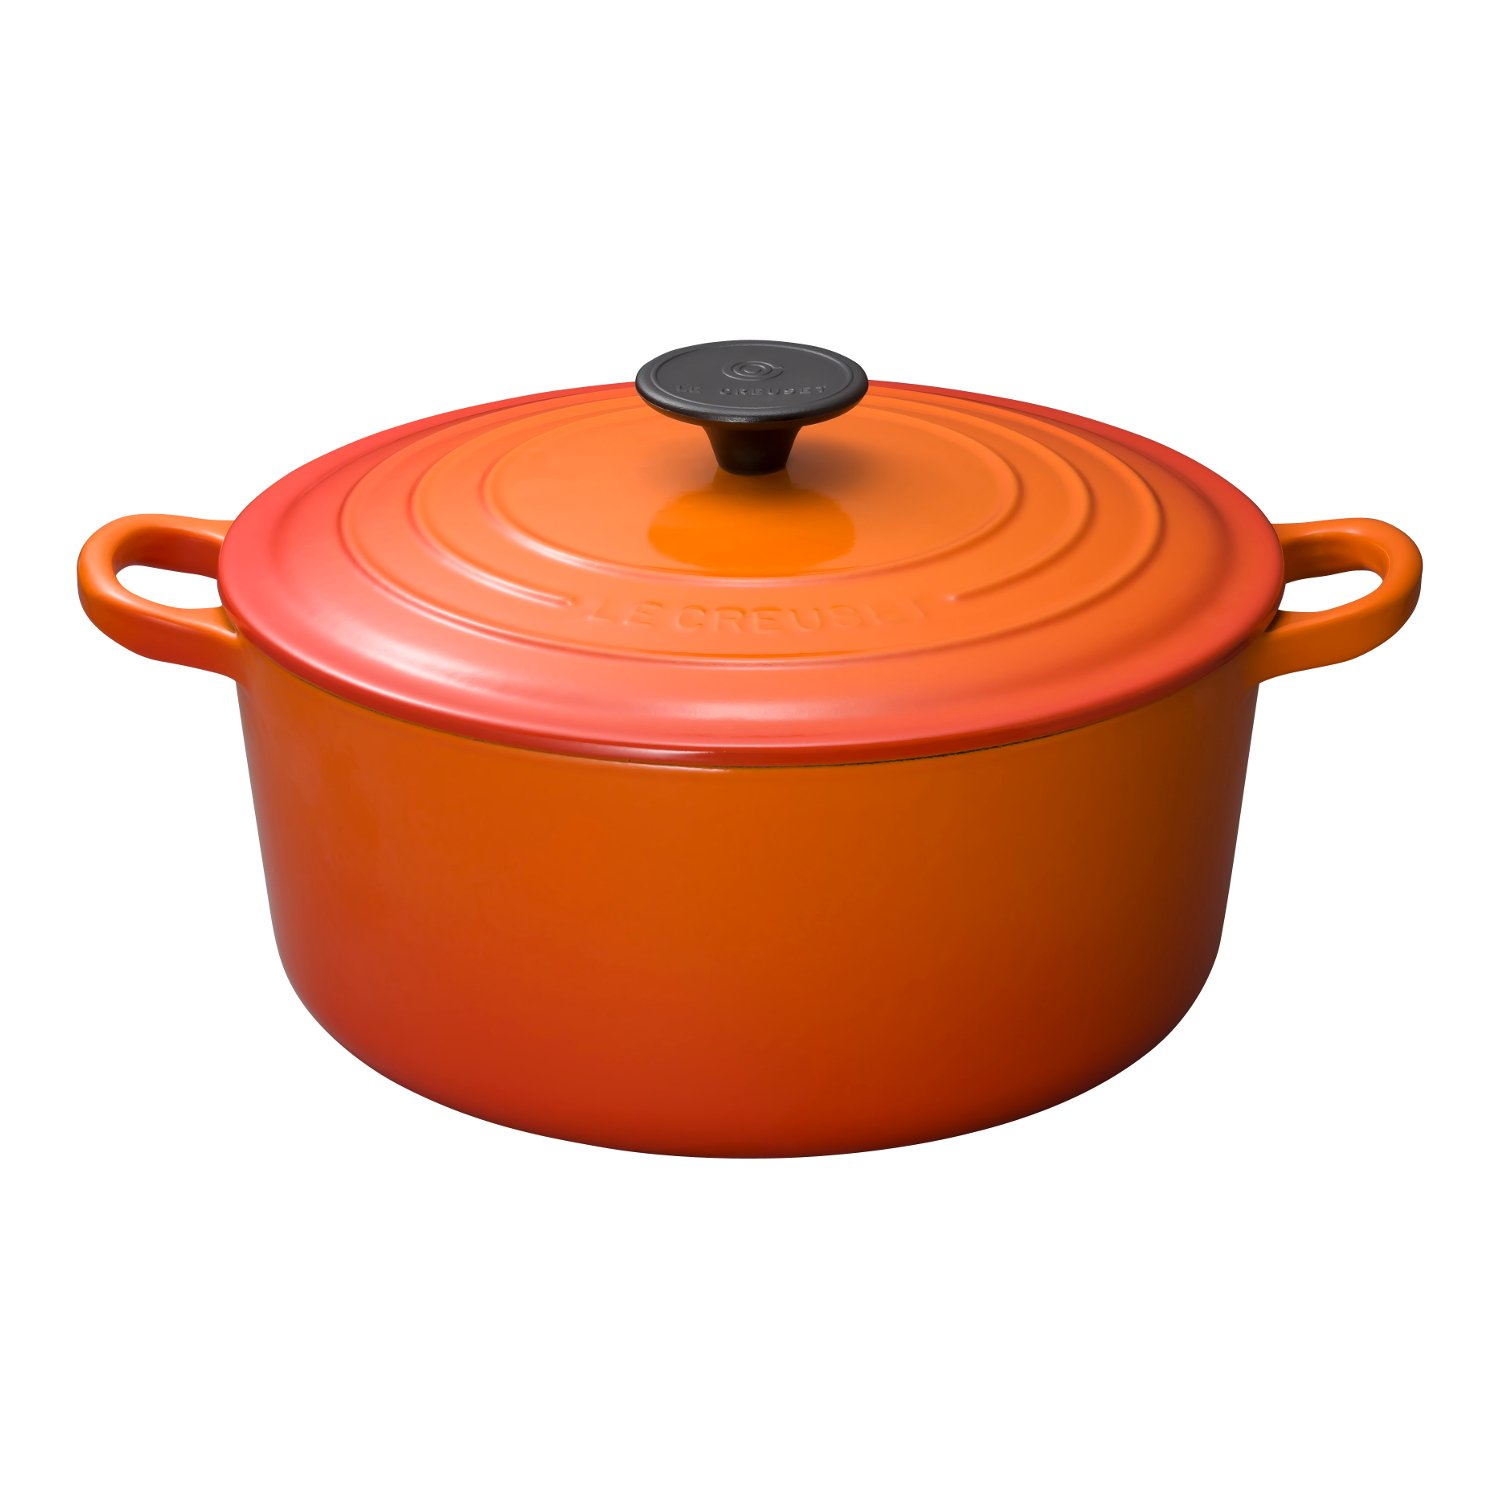 Le Creuset Enameled Cast-Iron 4-1/2-Quart Round French Oven, Flame